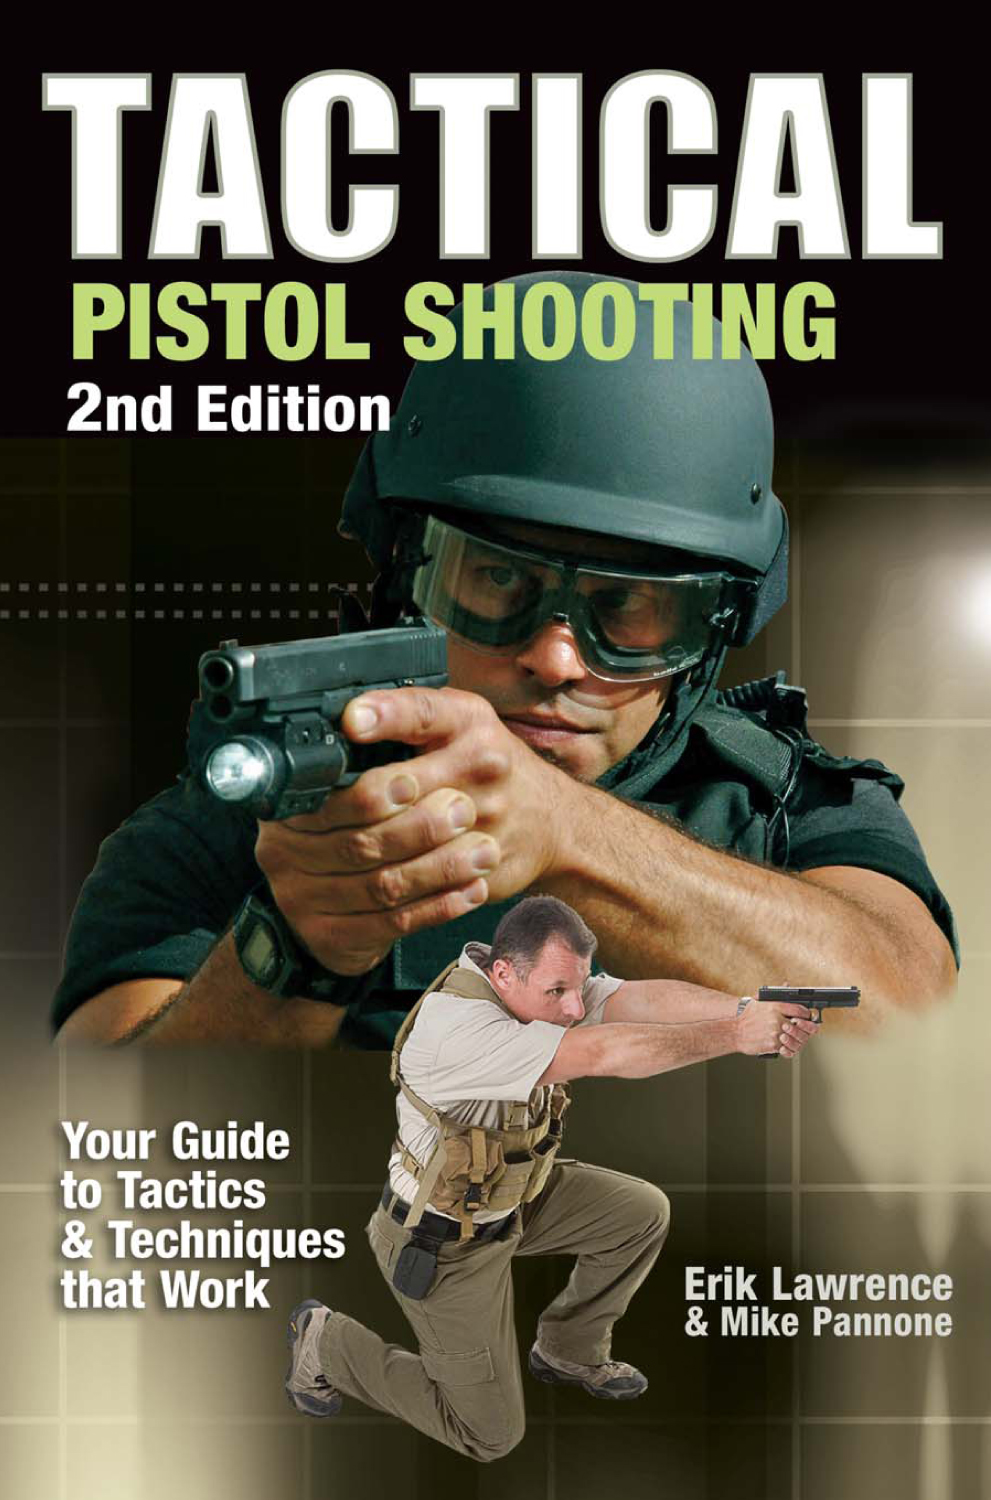 Tactical Pistol Shooting Your Guide to Tactics that Work